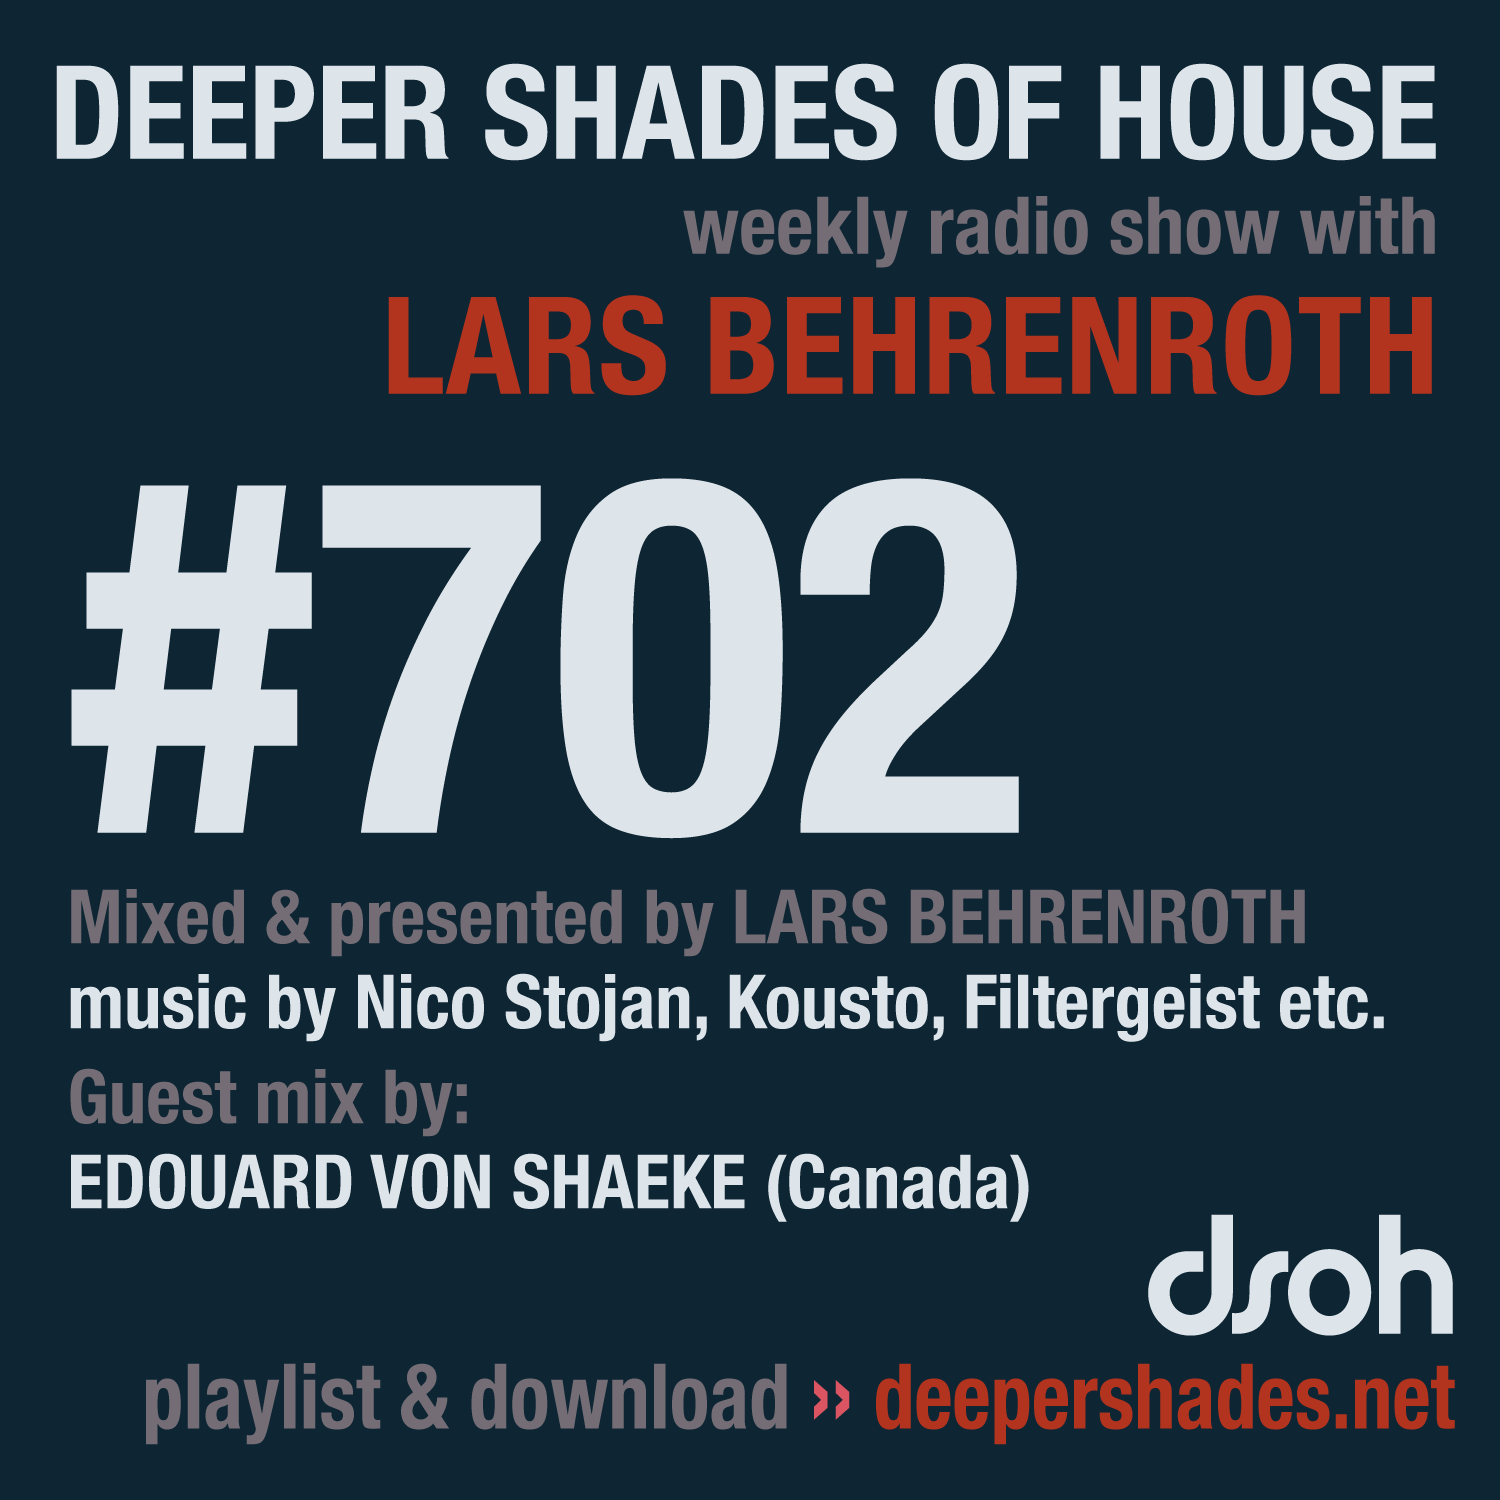 Deeper Shades Of House #702 - guest mix by EDOUARD VON SHAEKE